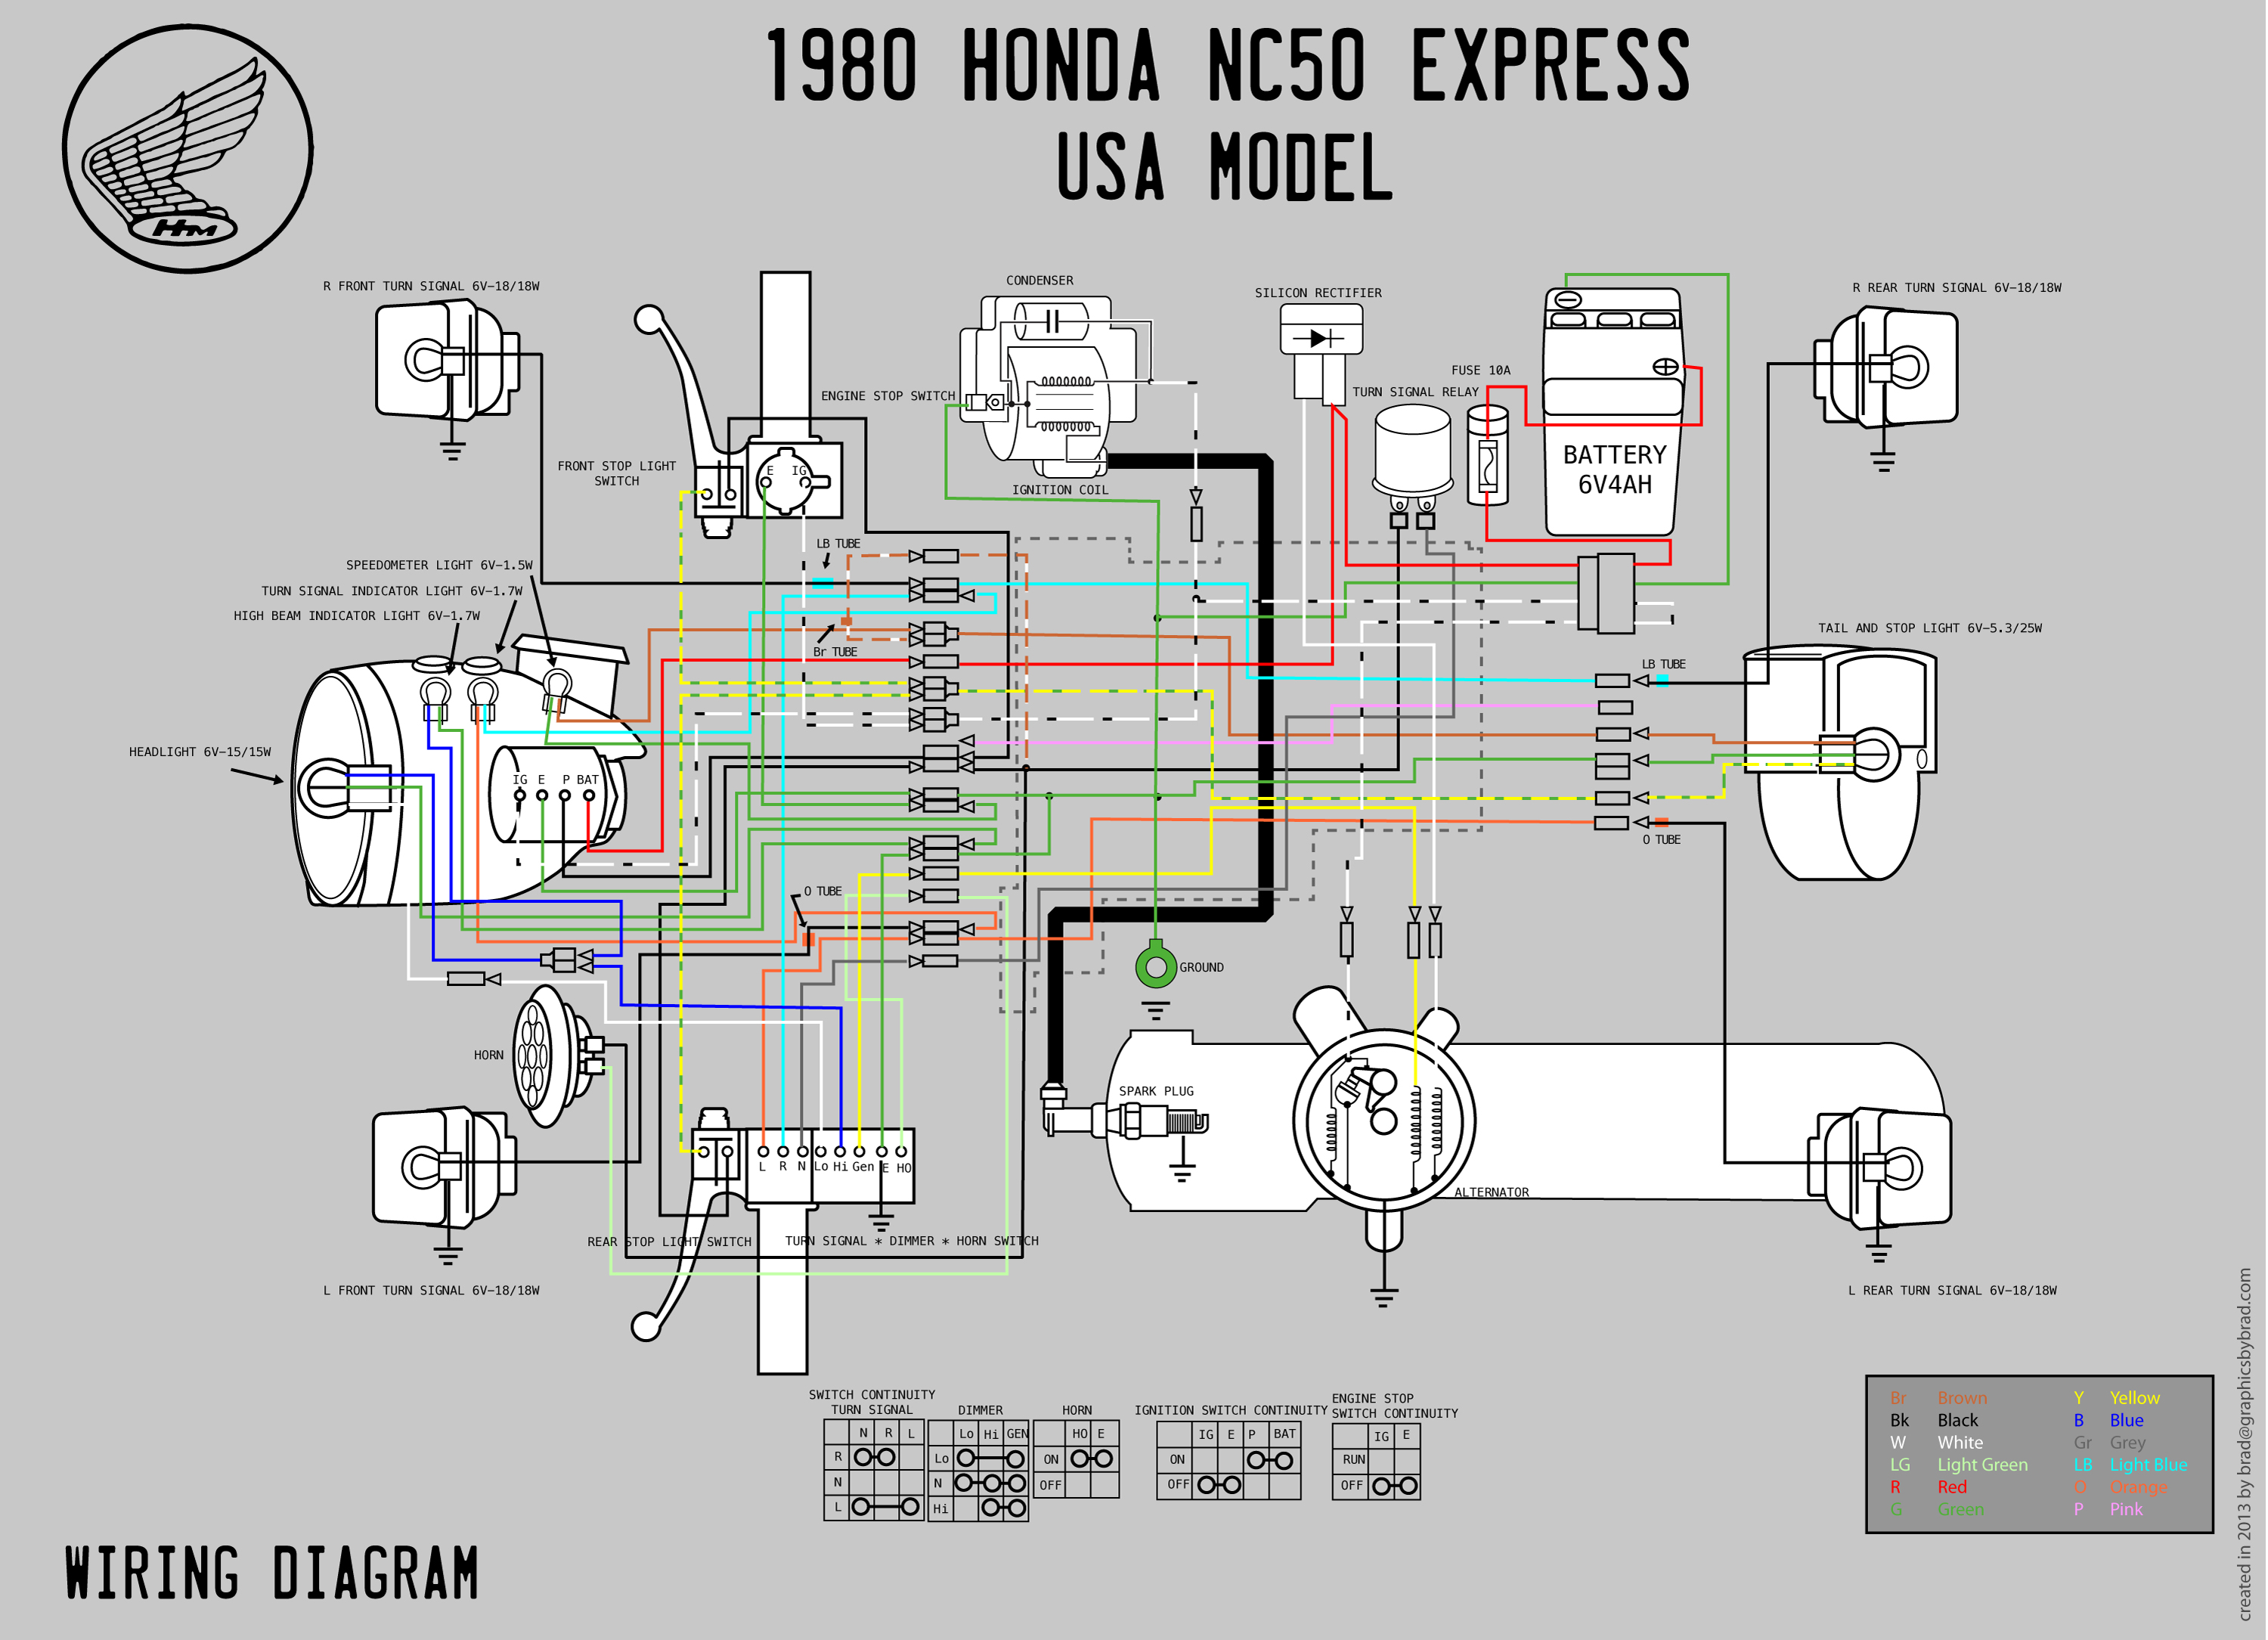 1980 Honda Nc50 Wiring Diagram Moped Wiki 1996 Honda Civic Wiring Harness  Honda 50 Honda Wiring Harness